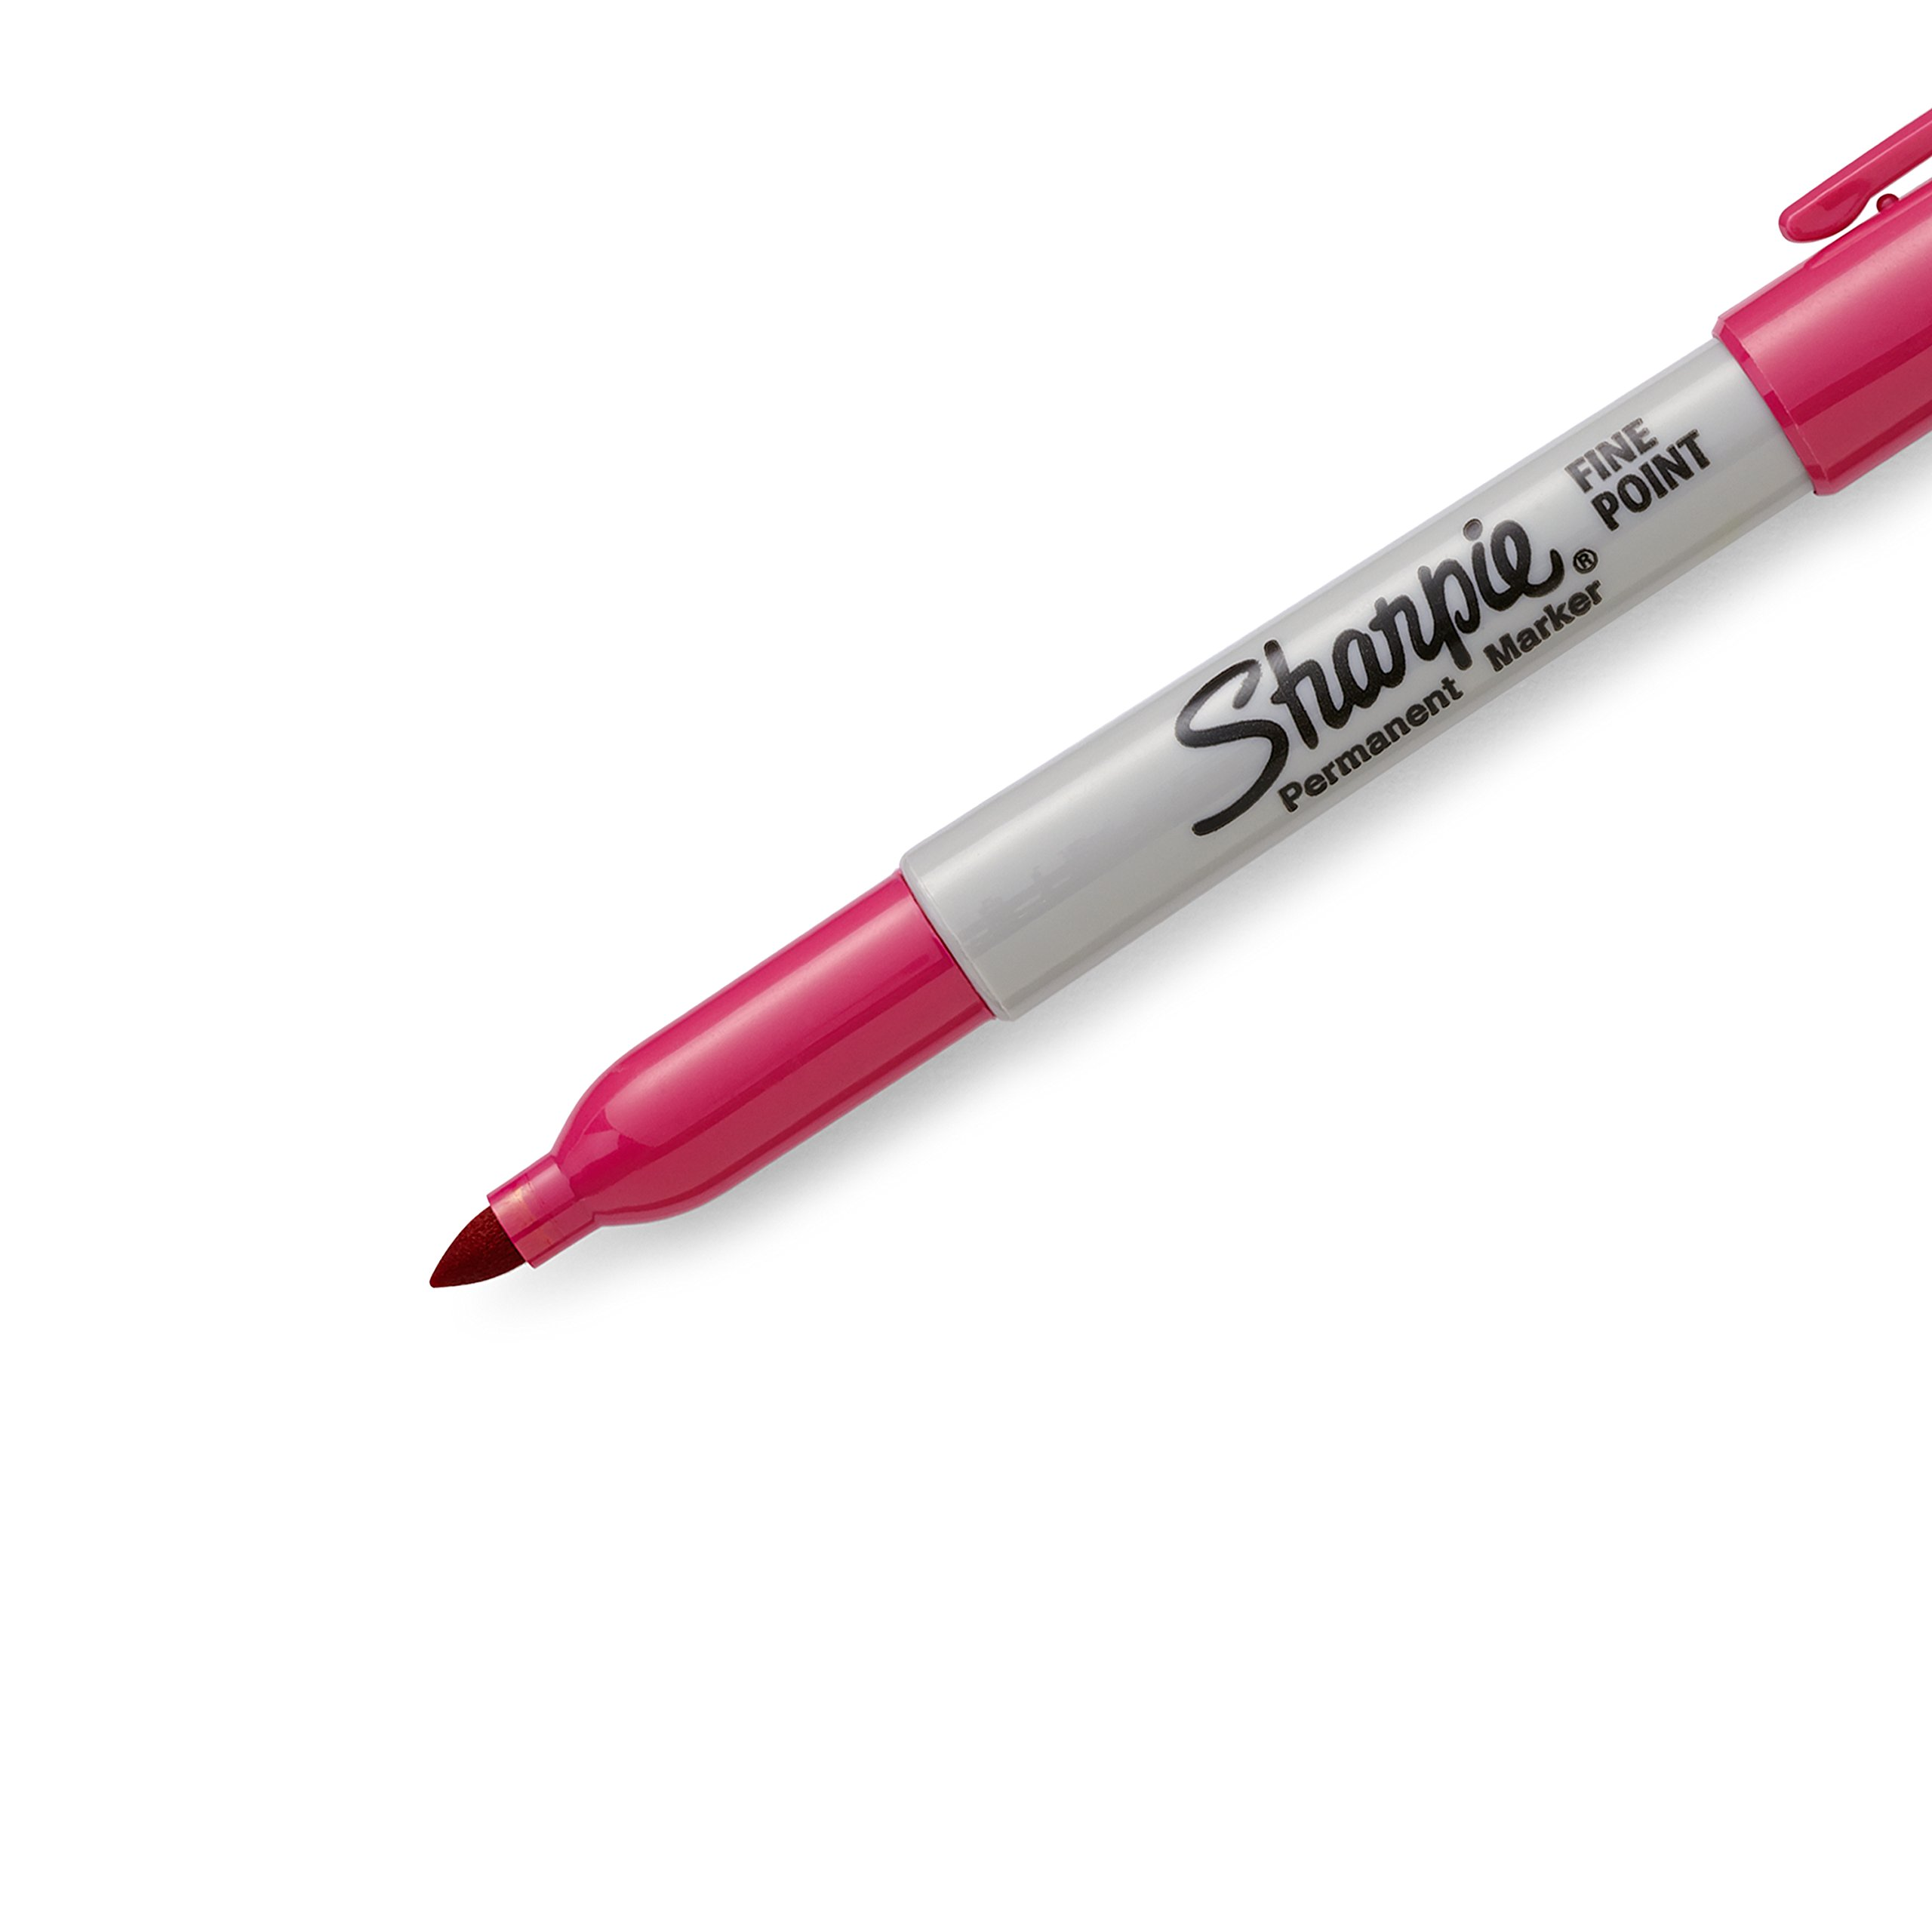 Sharpie Color Burst Permanent Markers, Fine Point, Assorted Colors, 24 Count by Sharpie (Image #12)